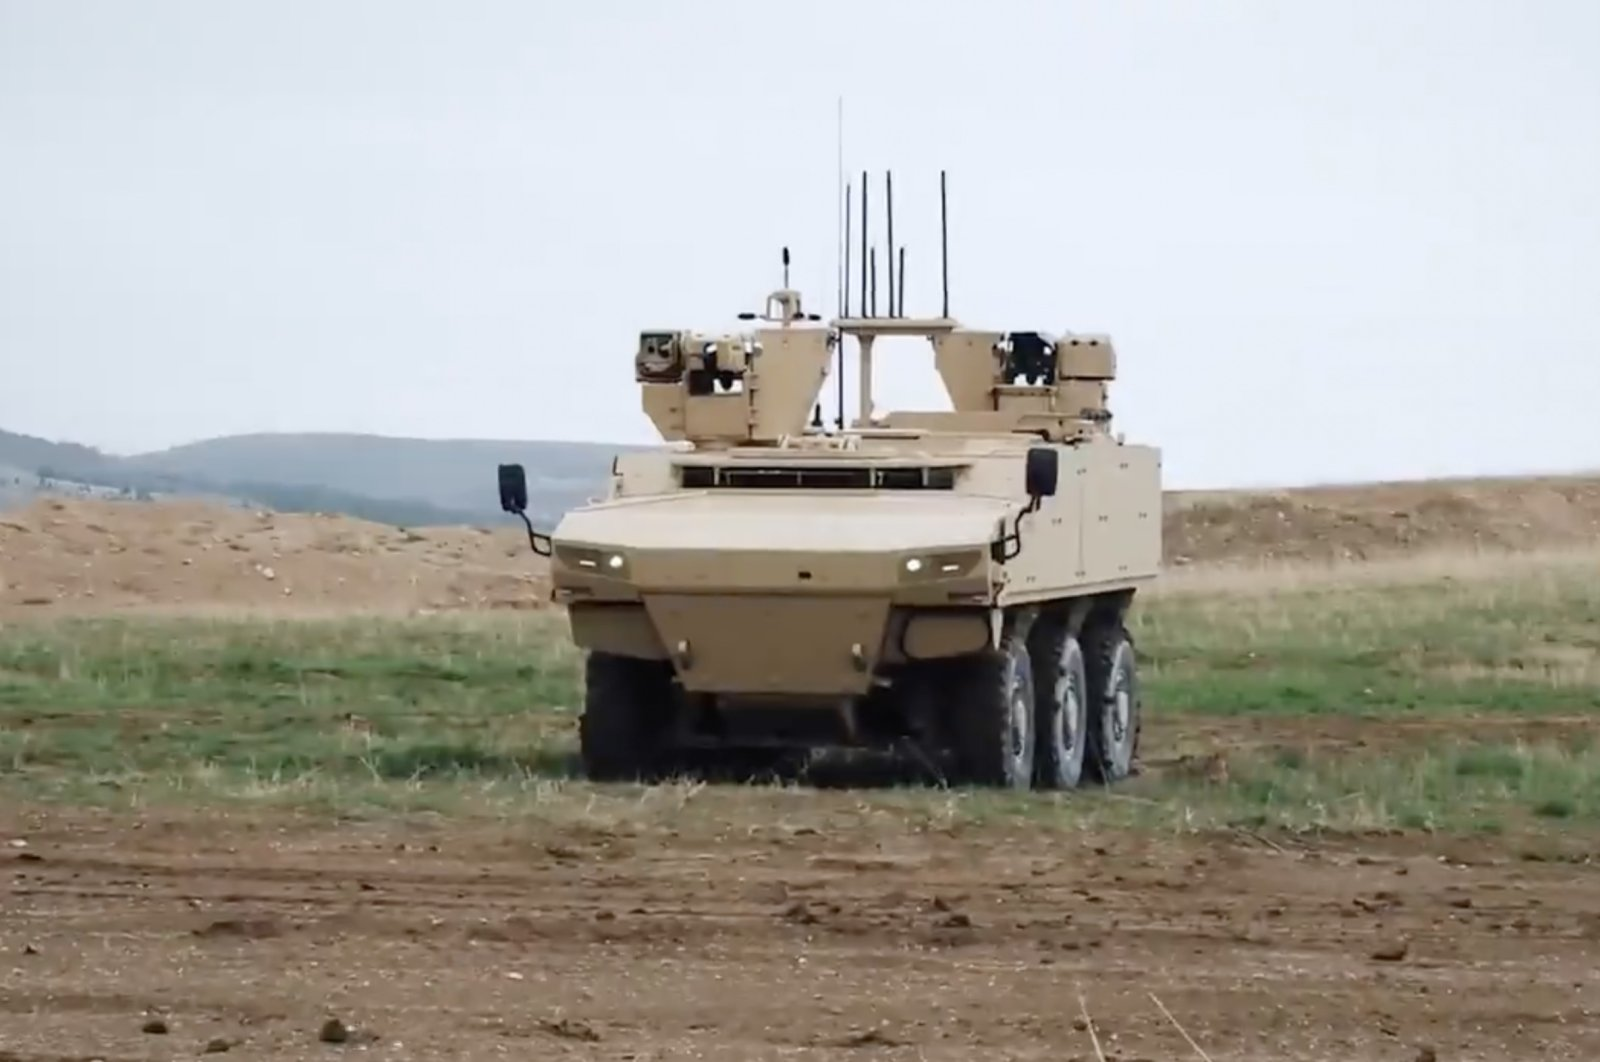 A screen grab from a video showing the PARS IV 6x6 from Turkish armored vehicle manufacturer FNSS.